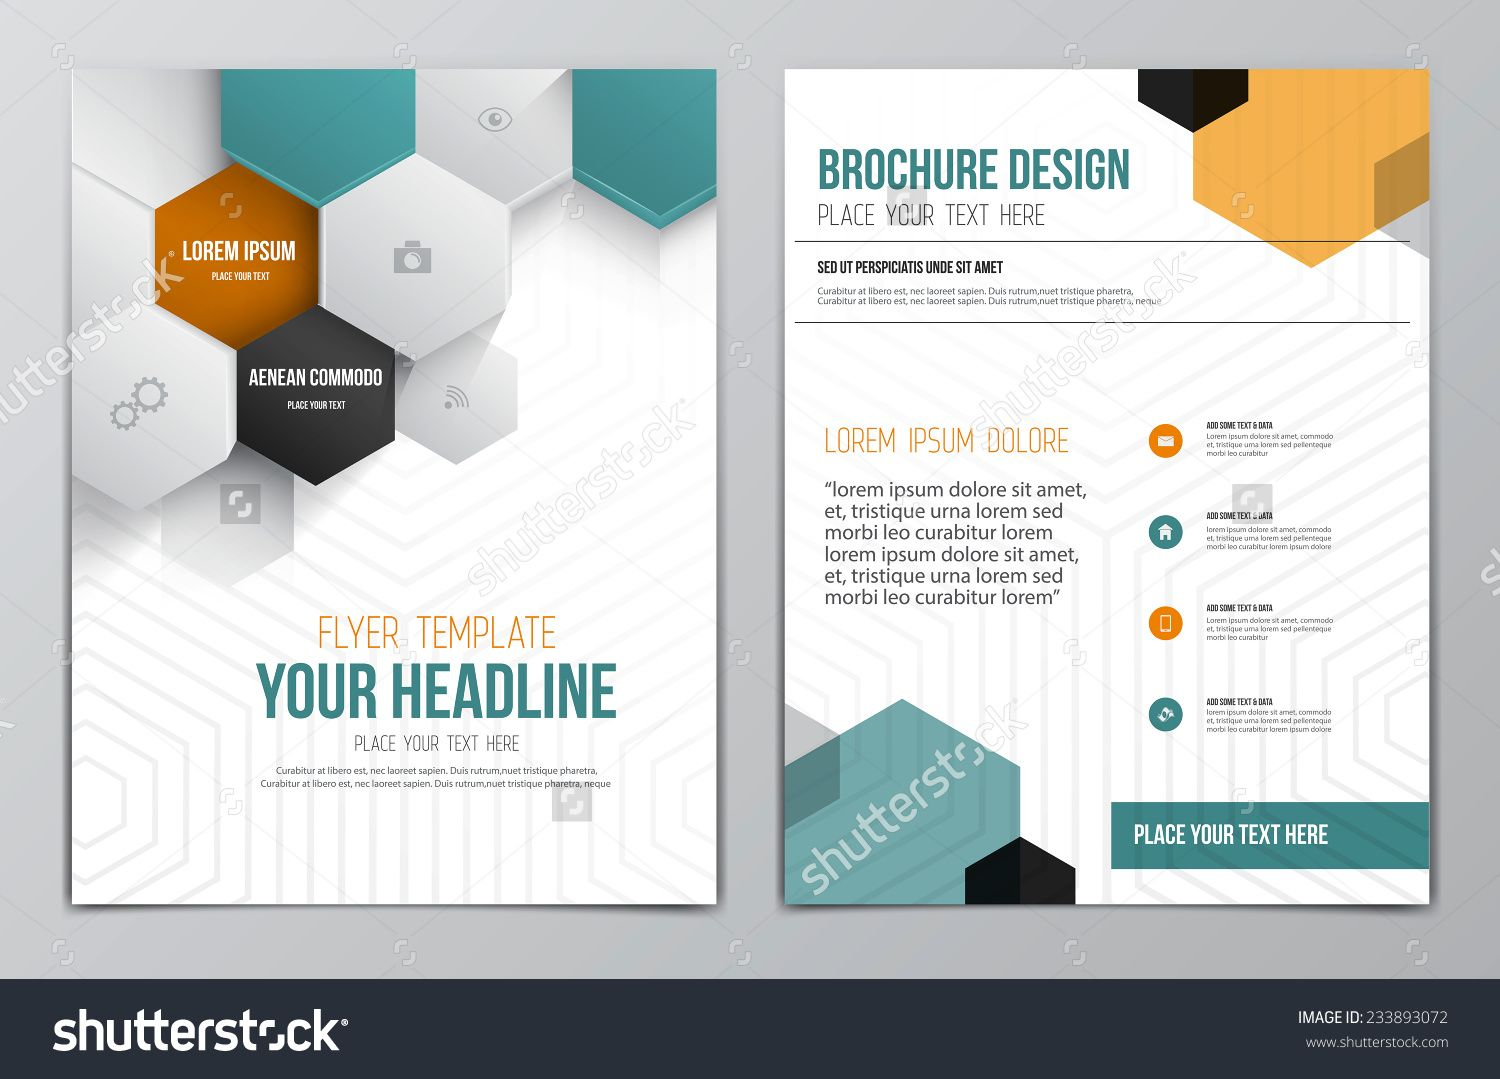 brochure design layout ideas - brochure design template geometric shapes abstract